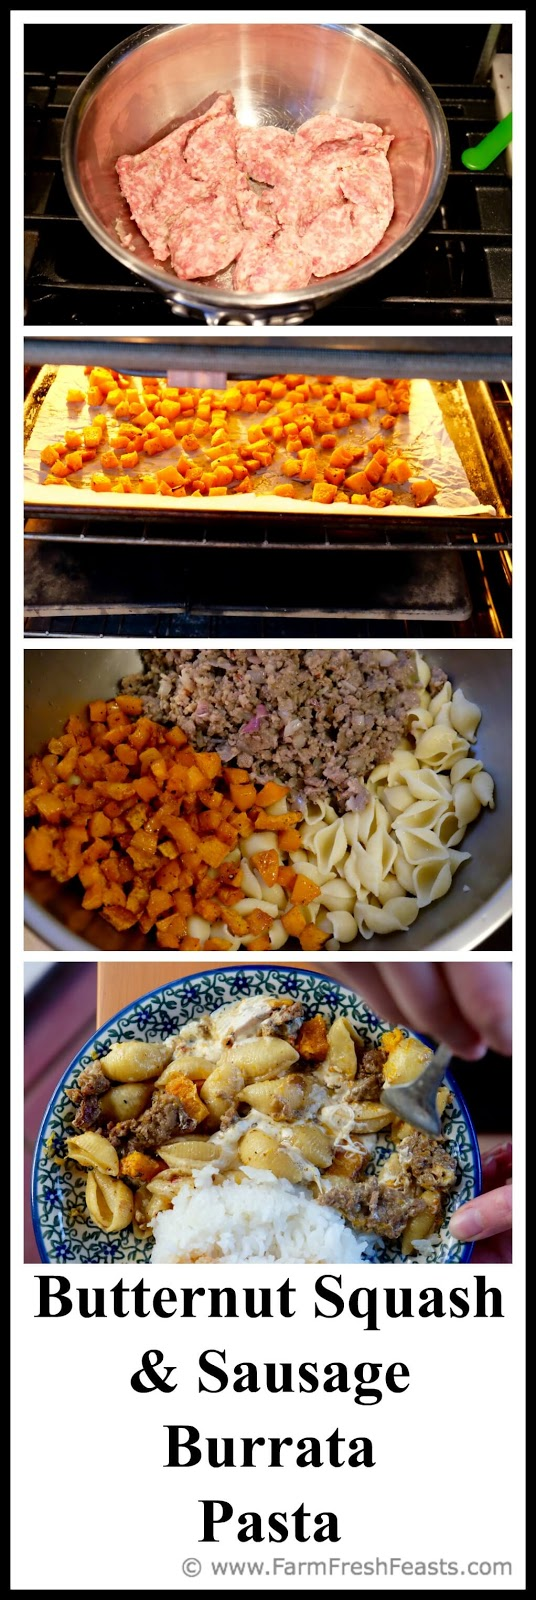 Cubes of butternut squash, Italian sausage crumbles, hot pasta and creamy burrata cheese.